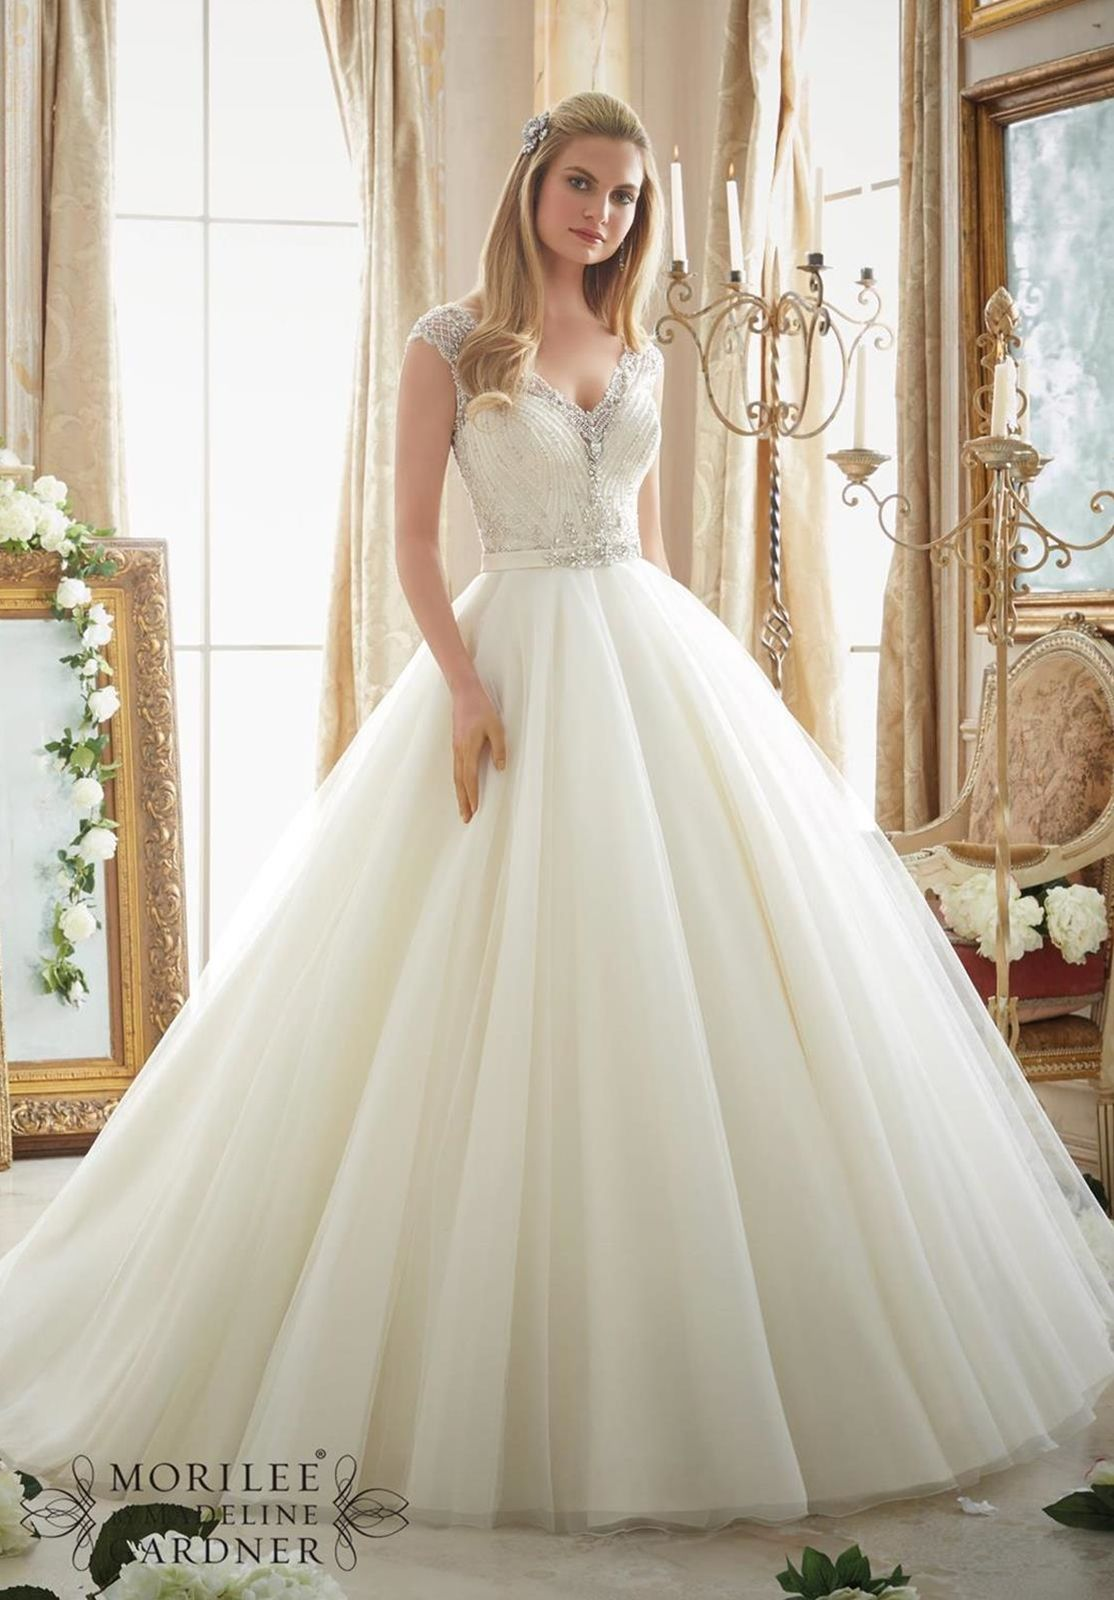 Mori lee wedding dresses dress style house of brides oh